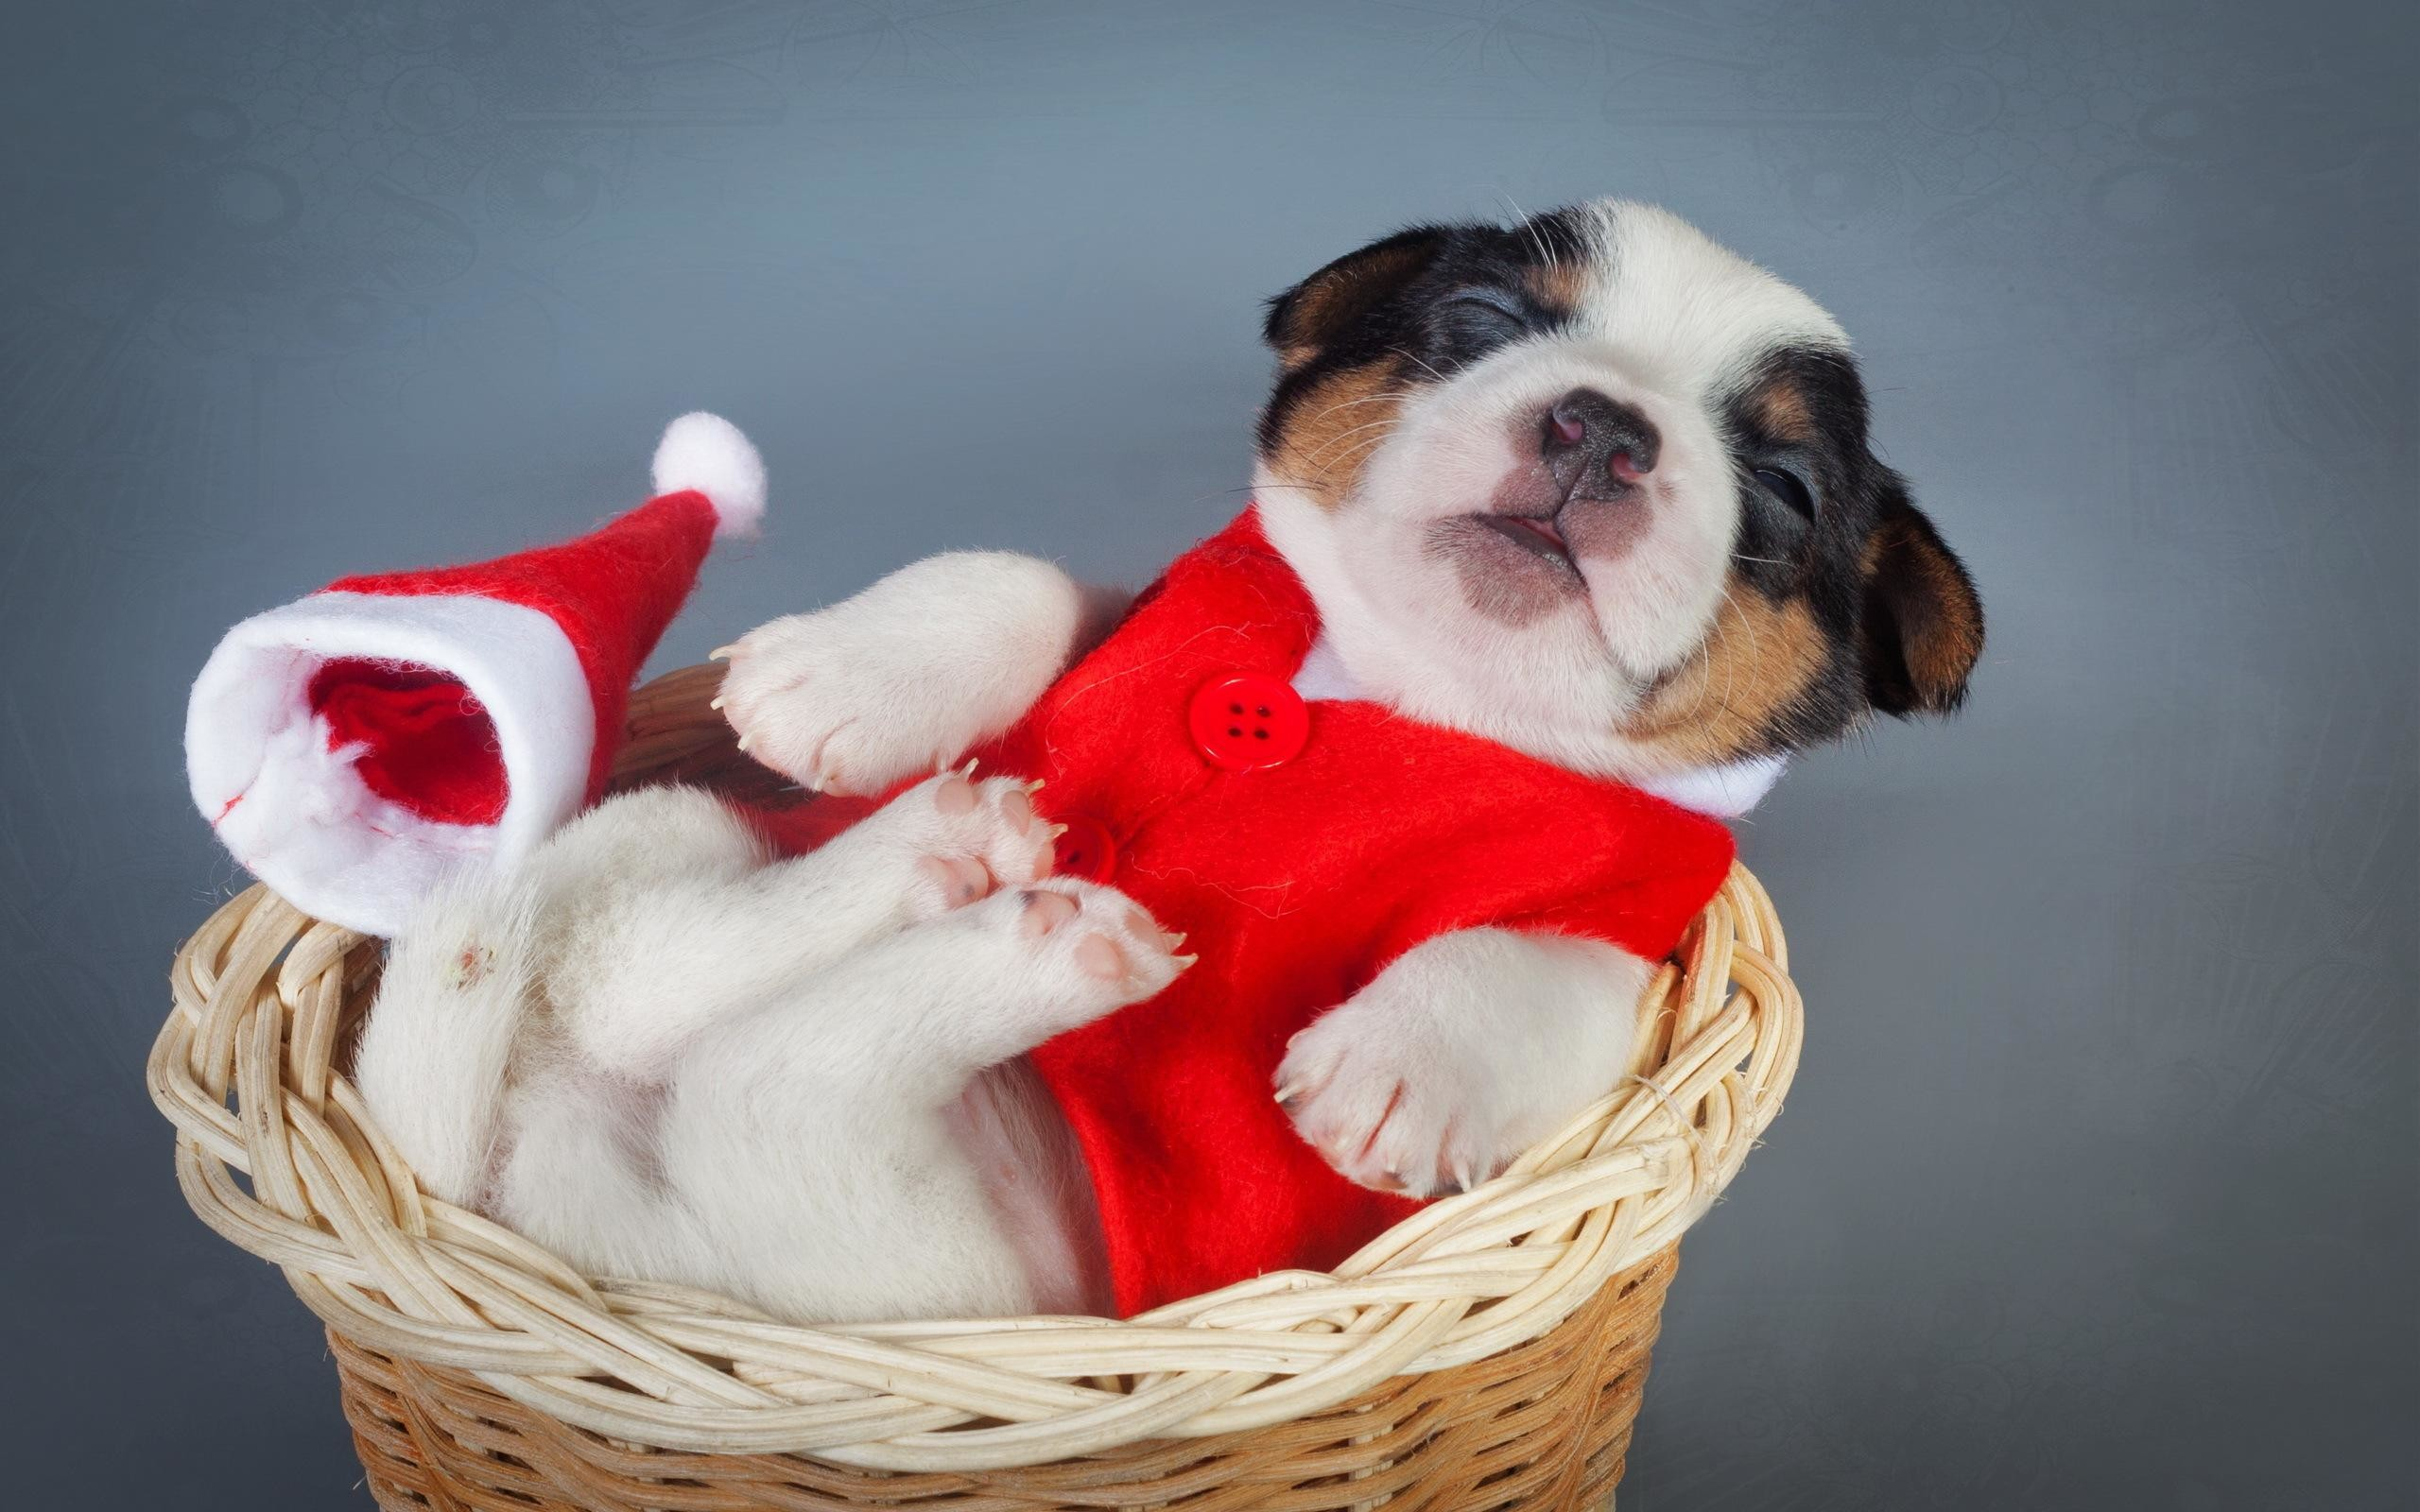 2560x1600 HD Dogs Christmas New Year Puppy Animals High Resolution Wallpaper